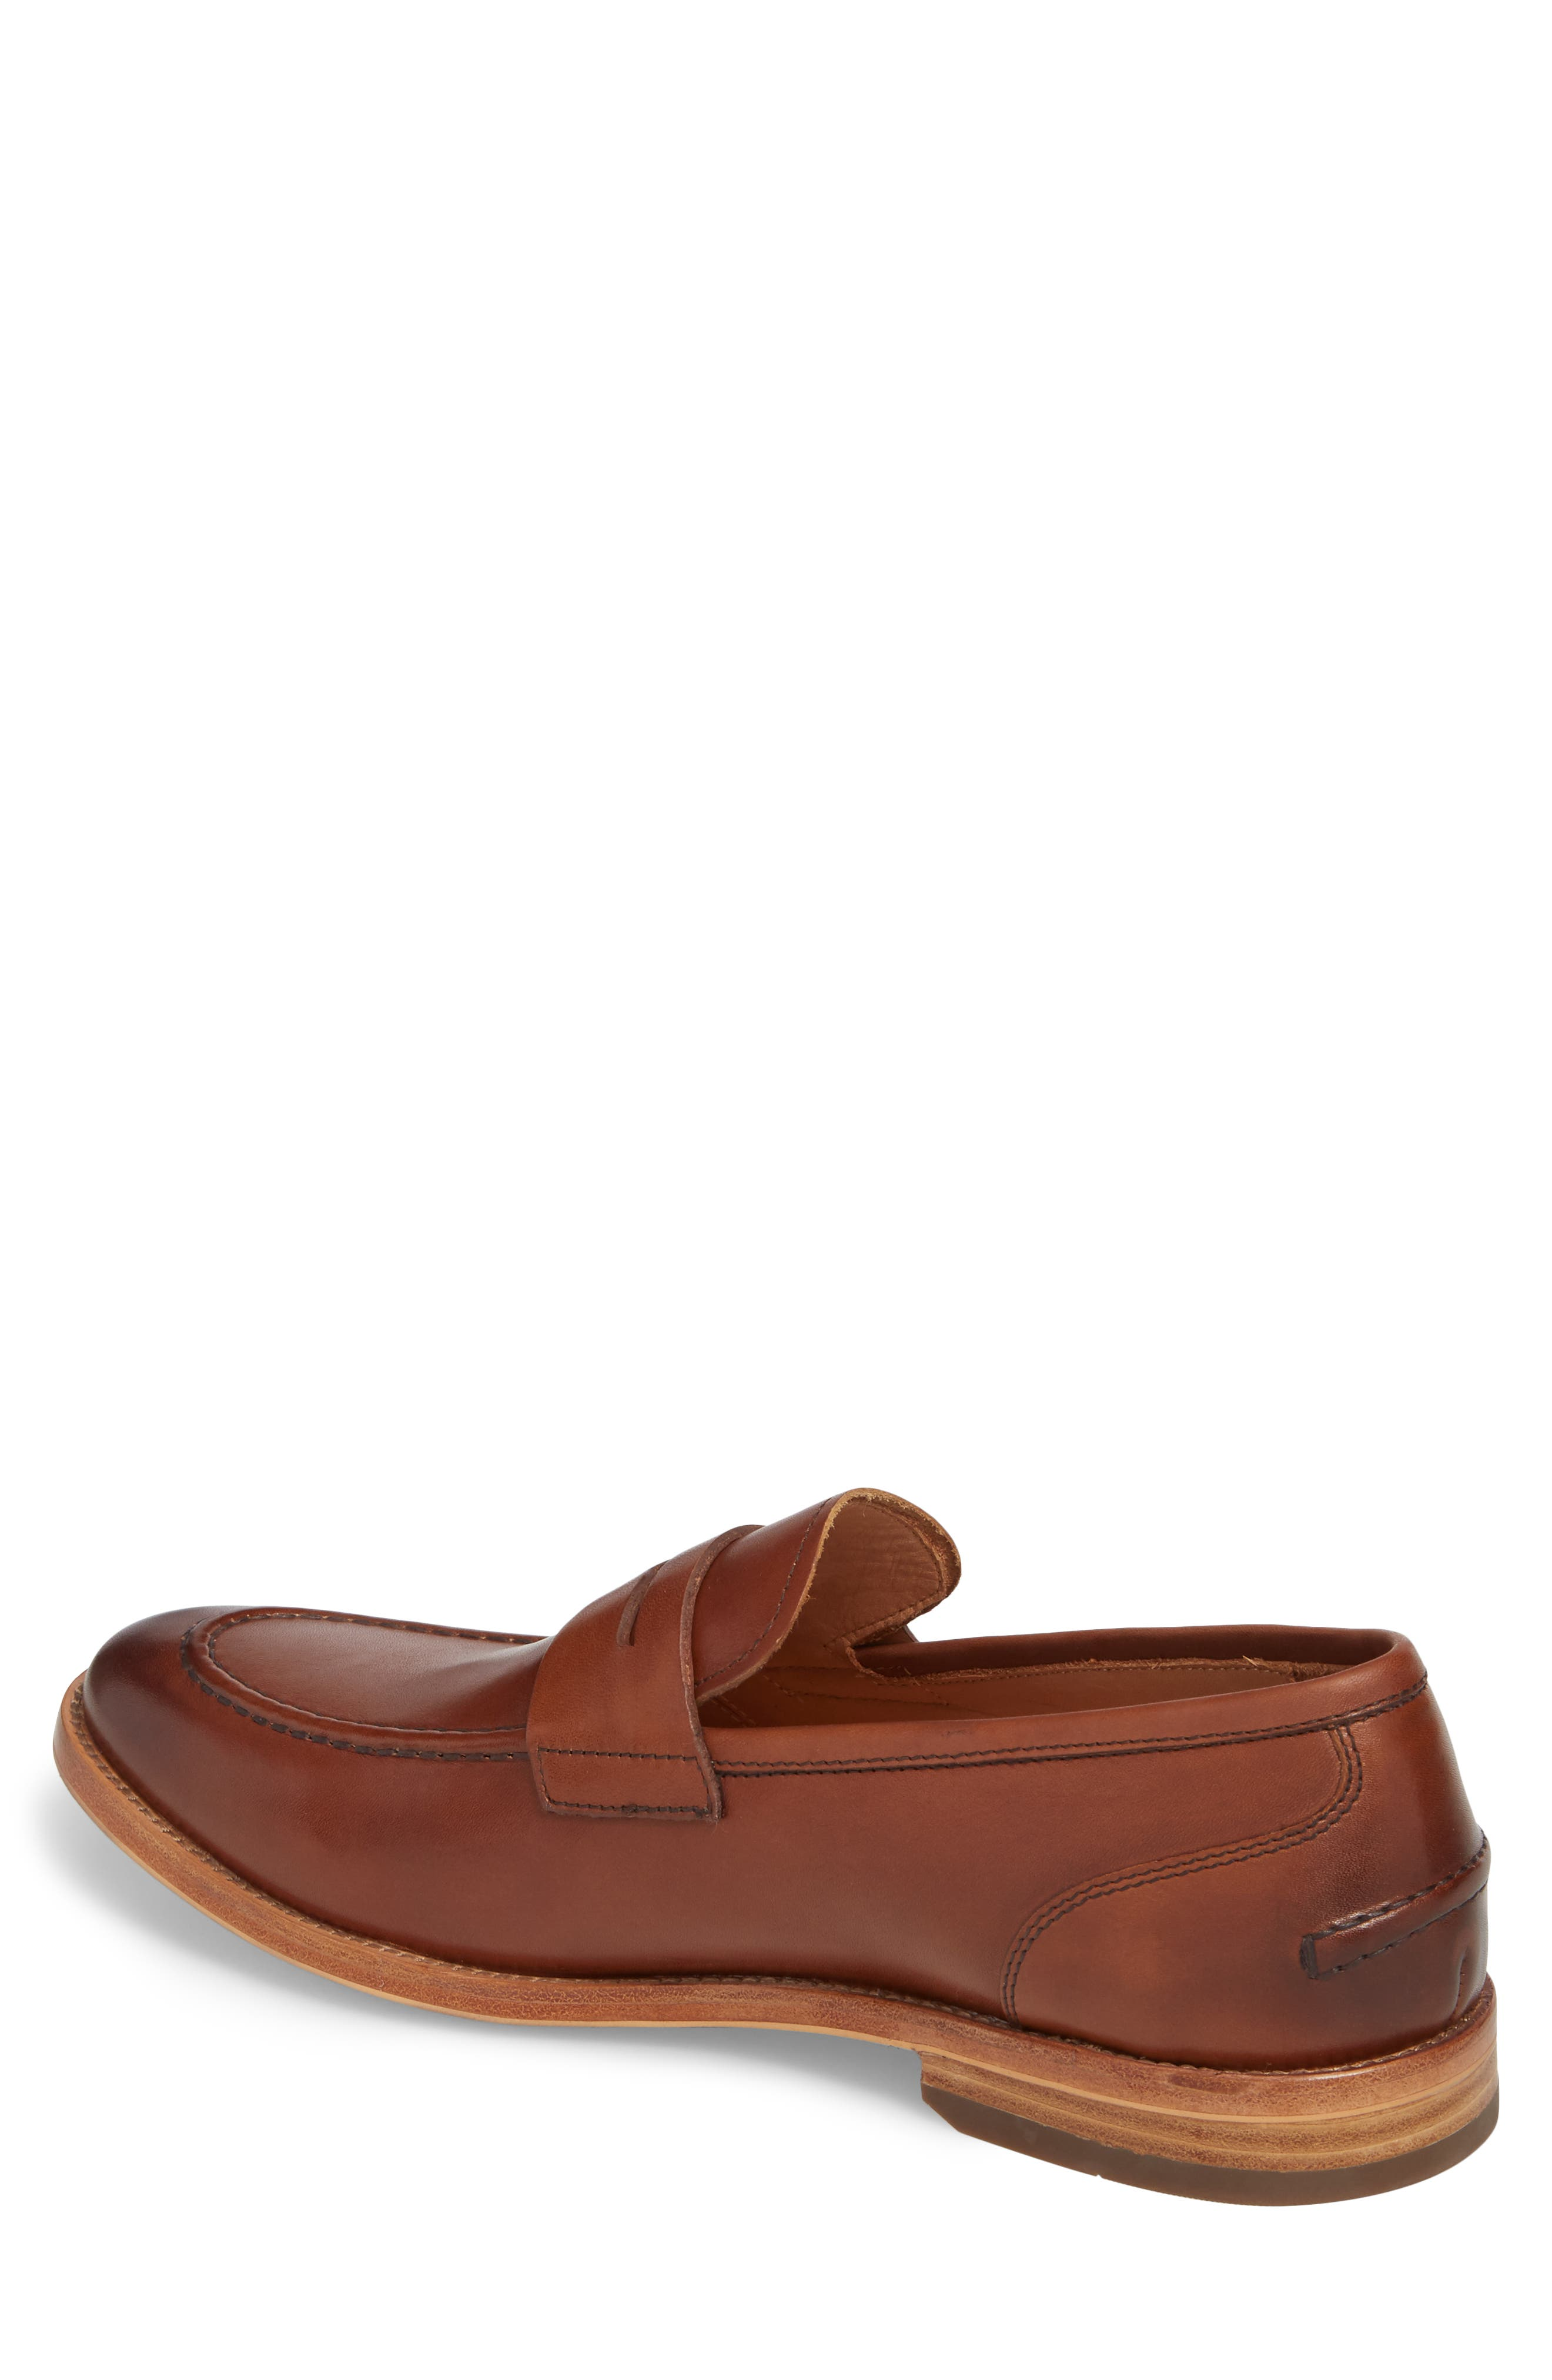 Lucas Loafer,                             Alternate thumbnail 2, color,                             Luggage Leather